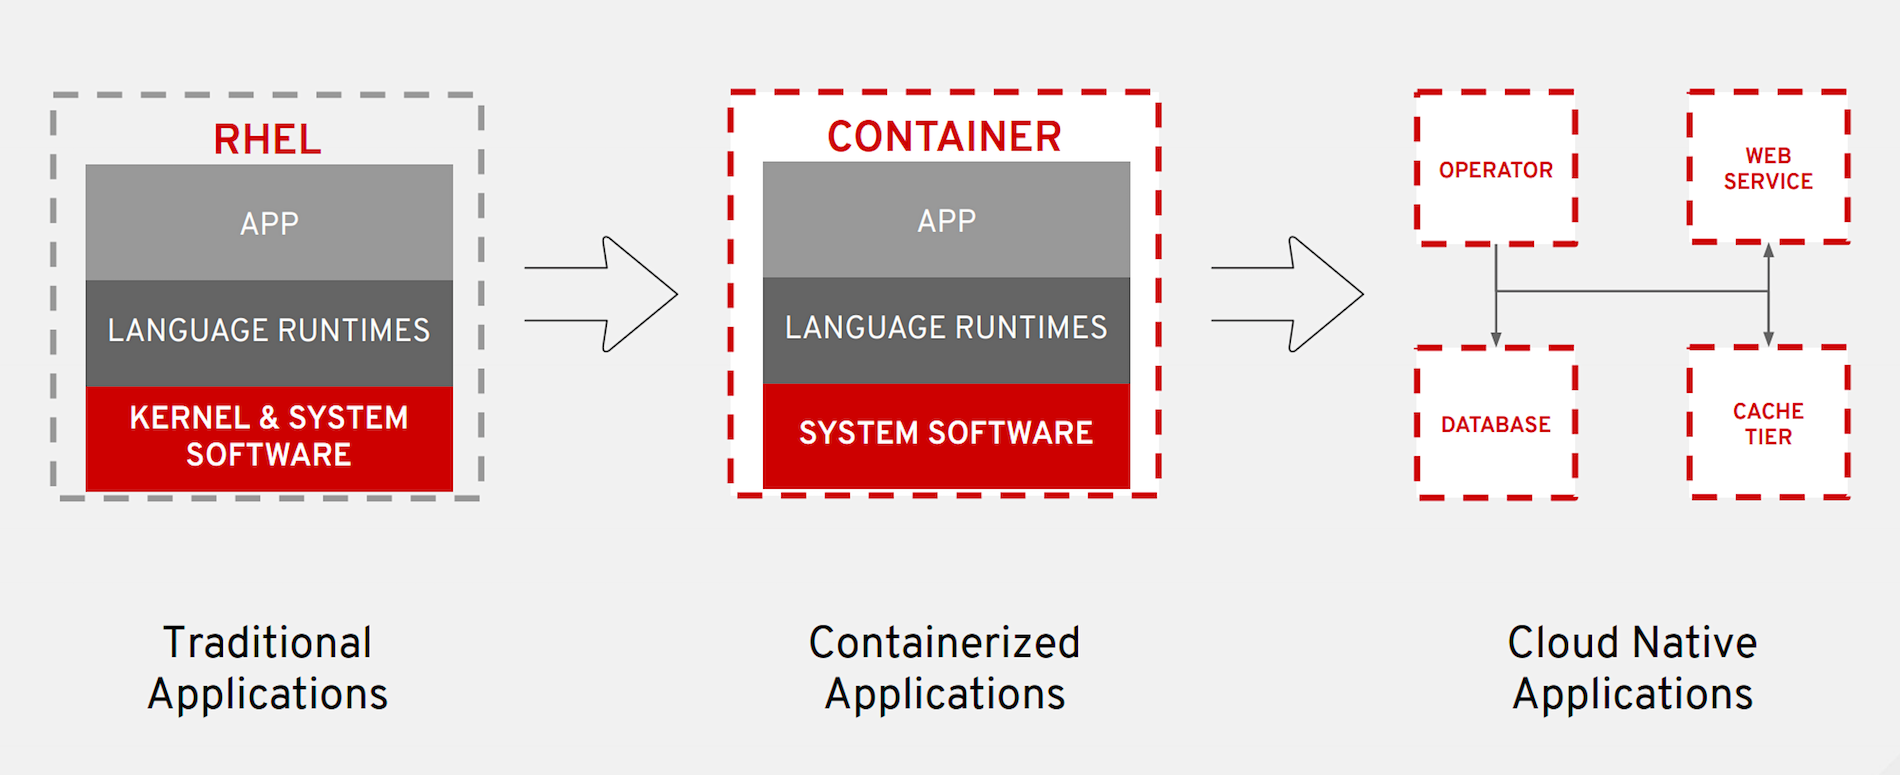 Container-related content you might have missed at Red Hat Summit